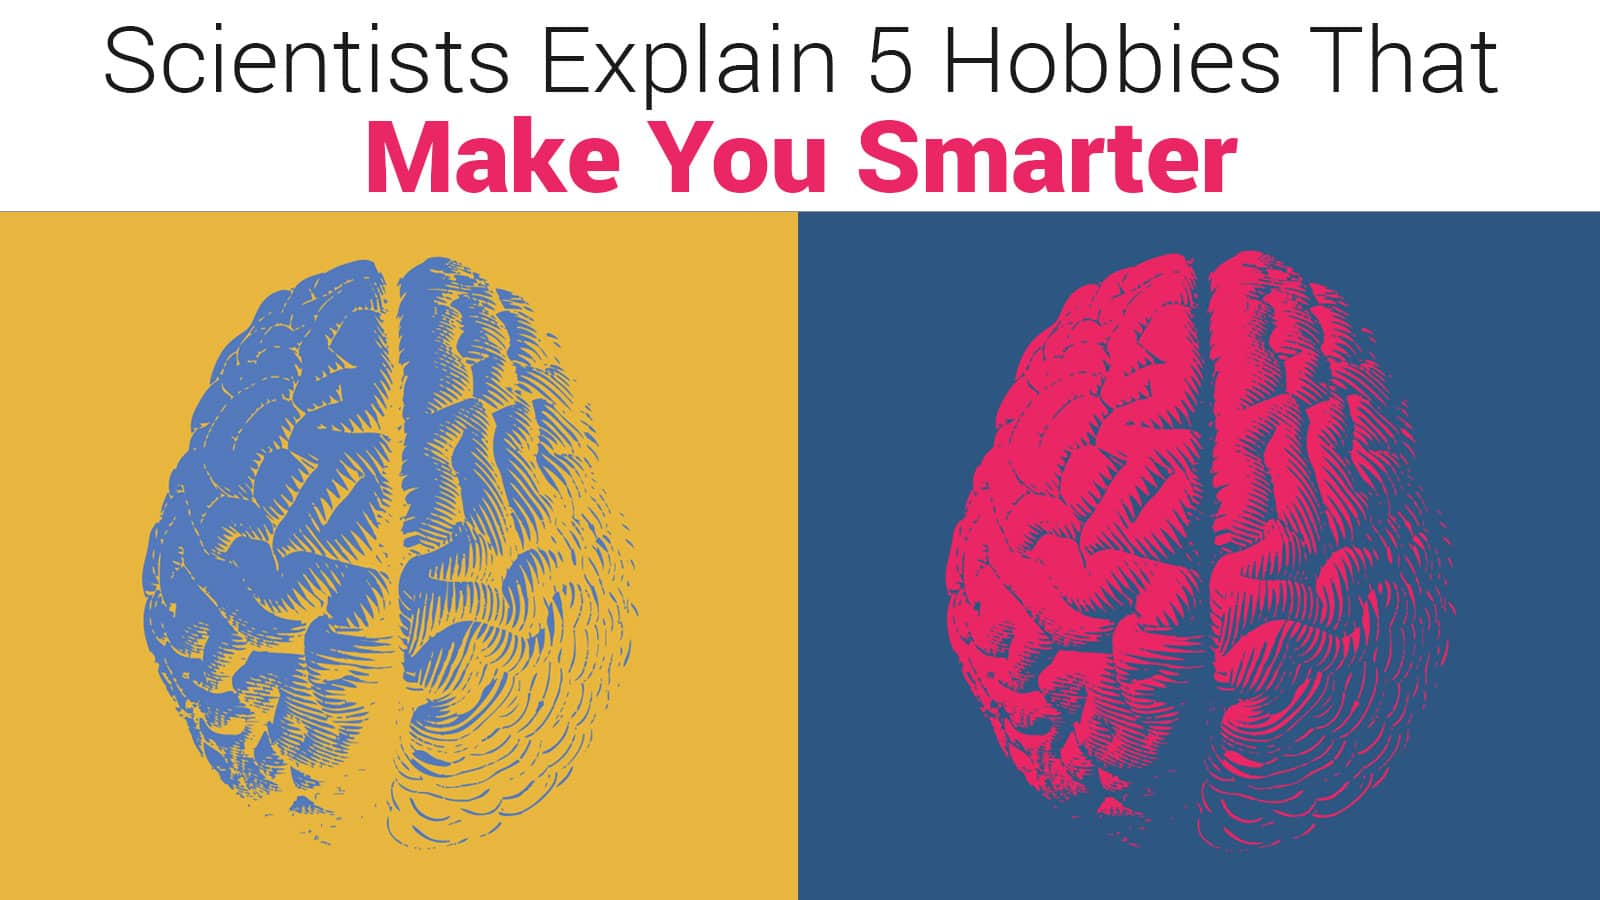 Scientists Explain 5 Hobbies That Make You Smarter